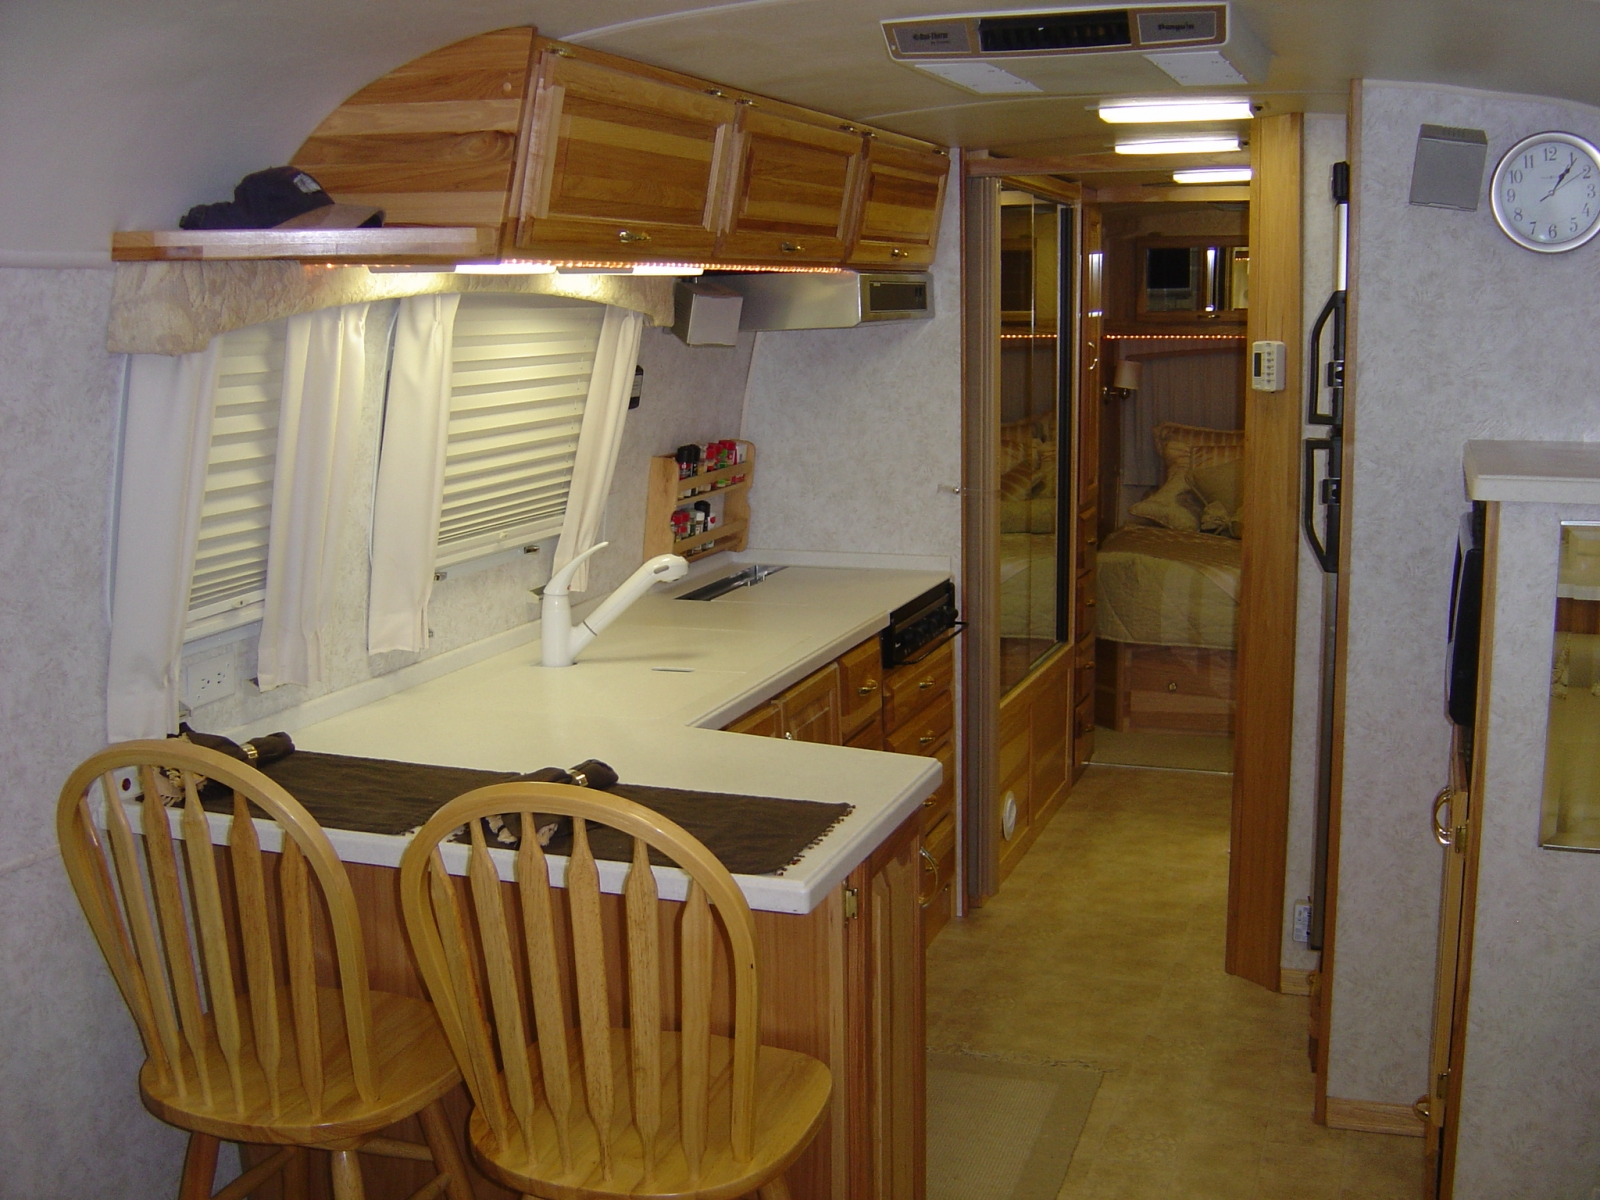 Click image for larger version  Name:AIRSTREAM_PICTURES002.JPG Views:152 Size:1.26 MB ID:73349